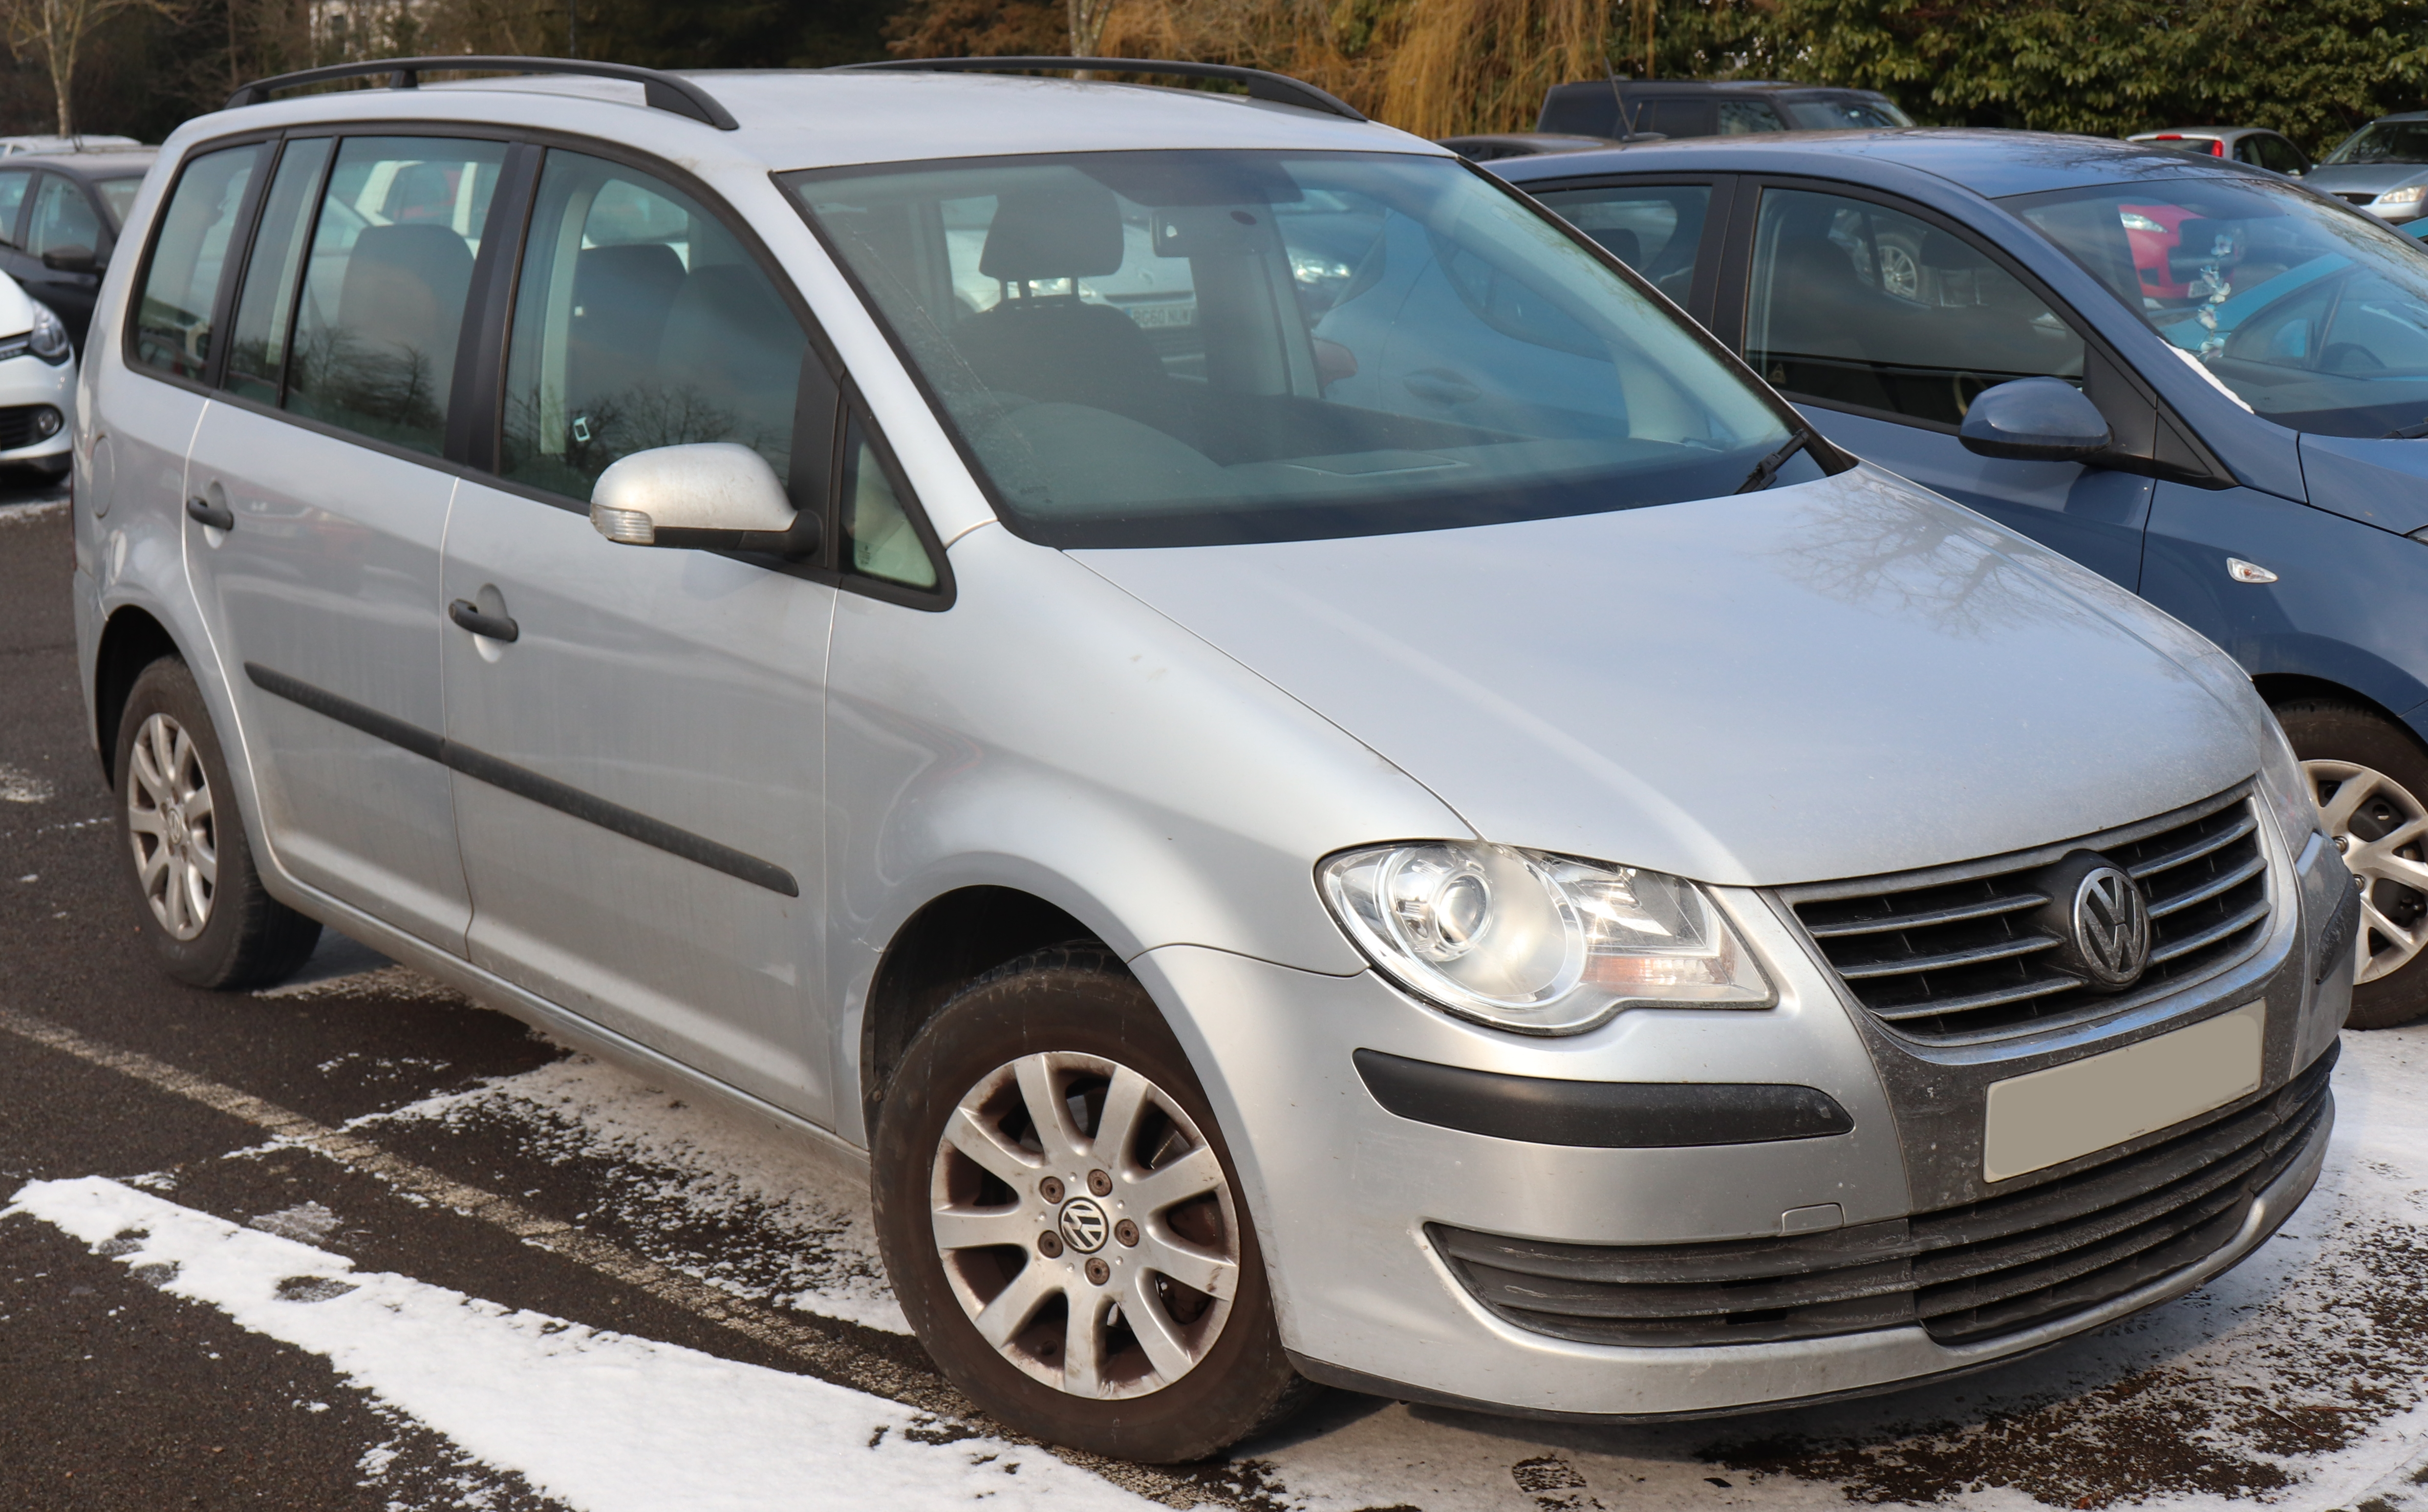 file 2009 volkswagen touran s facelift 1 6 front jpg wikimedia commons rh commons wikimedia org Instruction Manual Example Operators Manual